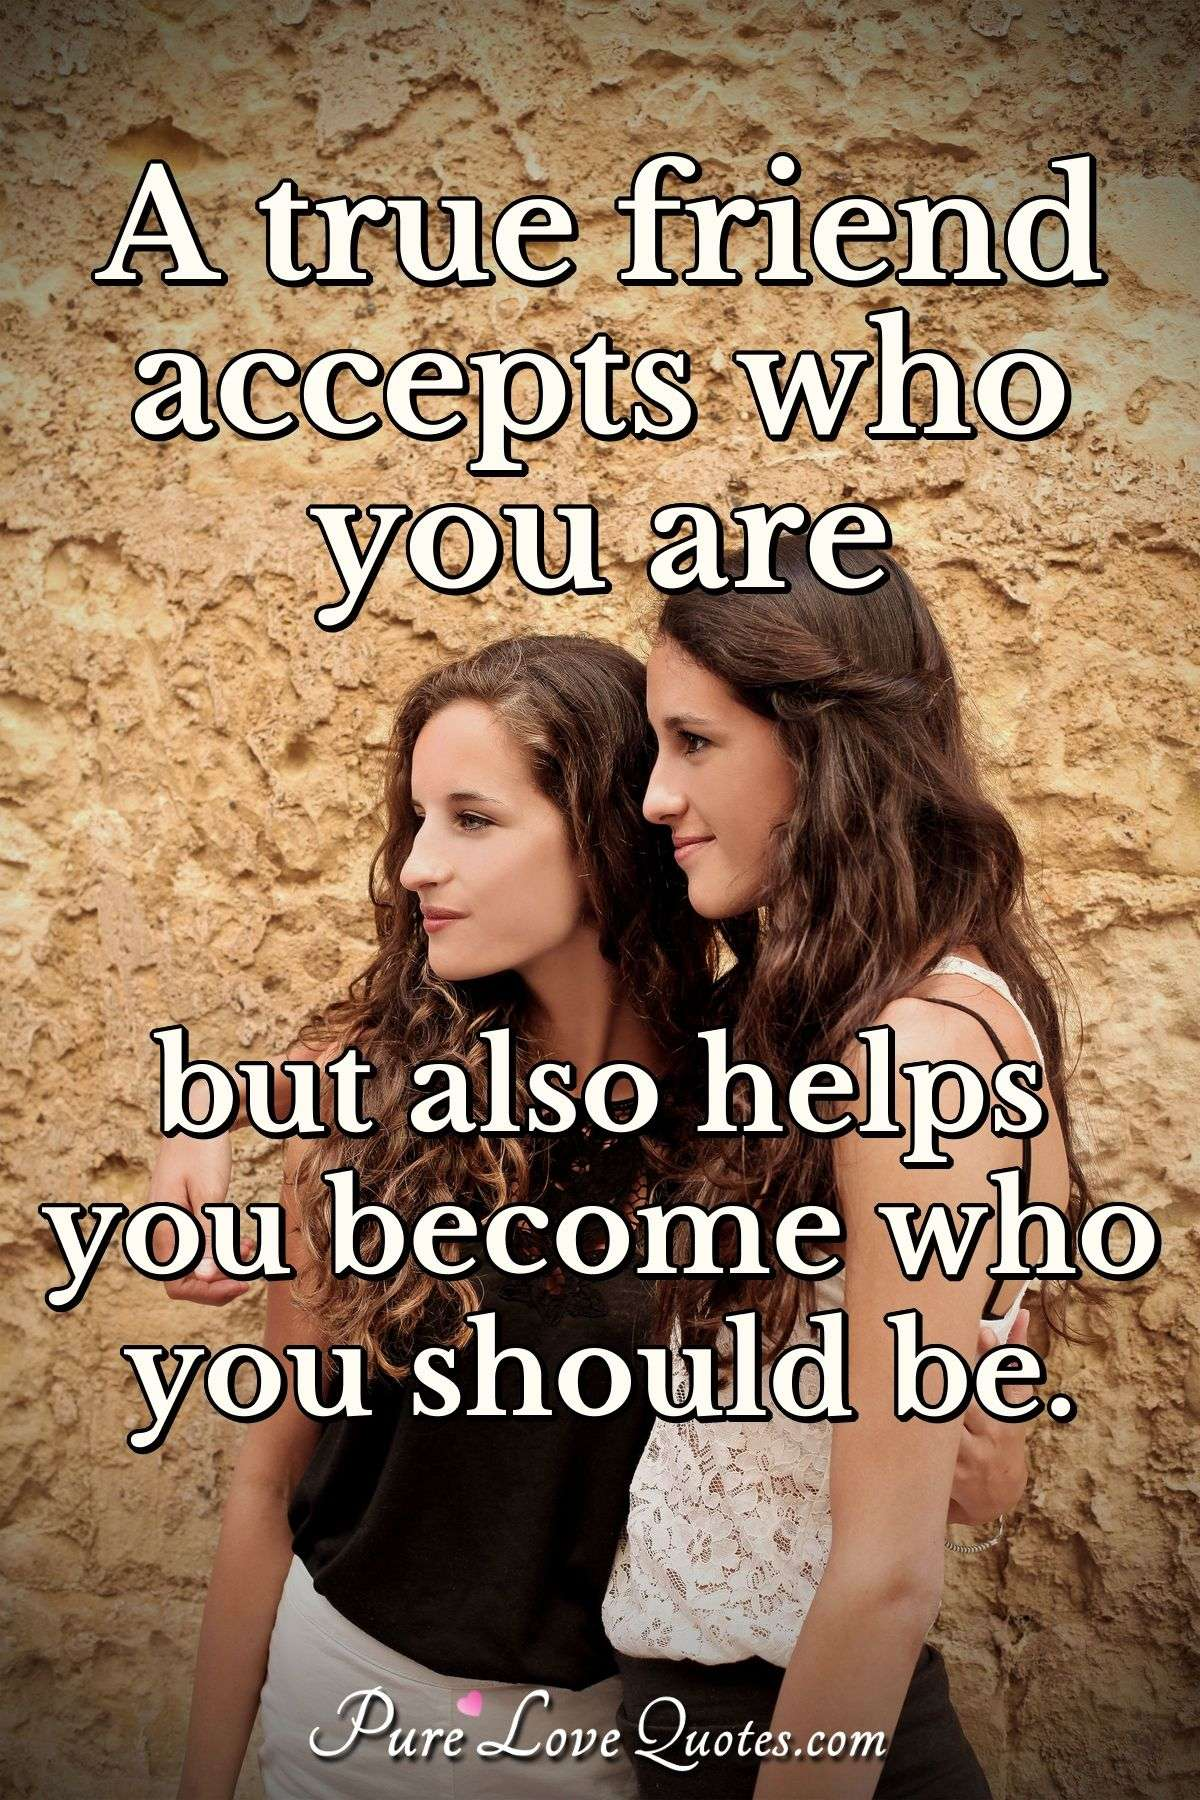 A true friend accepts who you are but also helps you become who you should be. - Anonymous